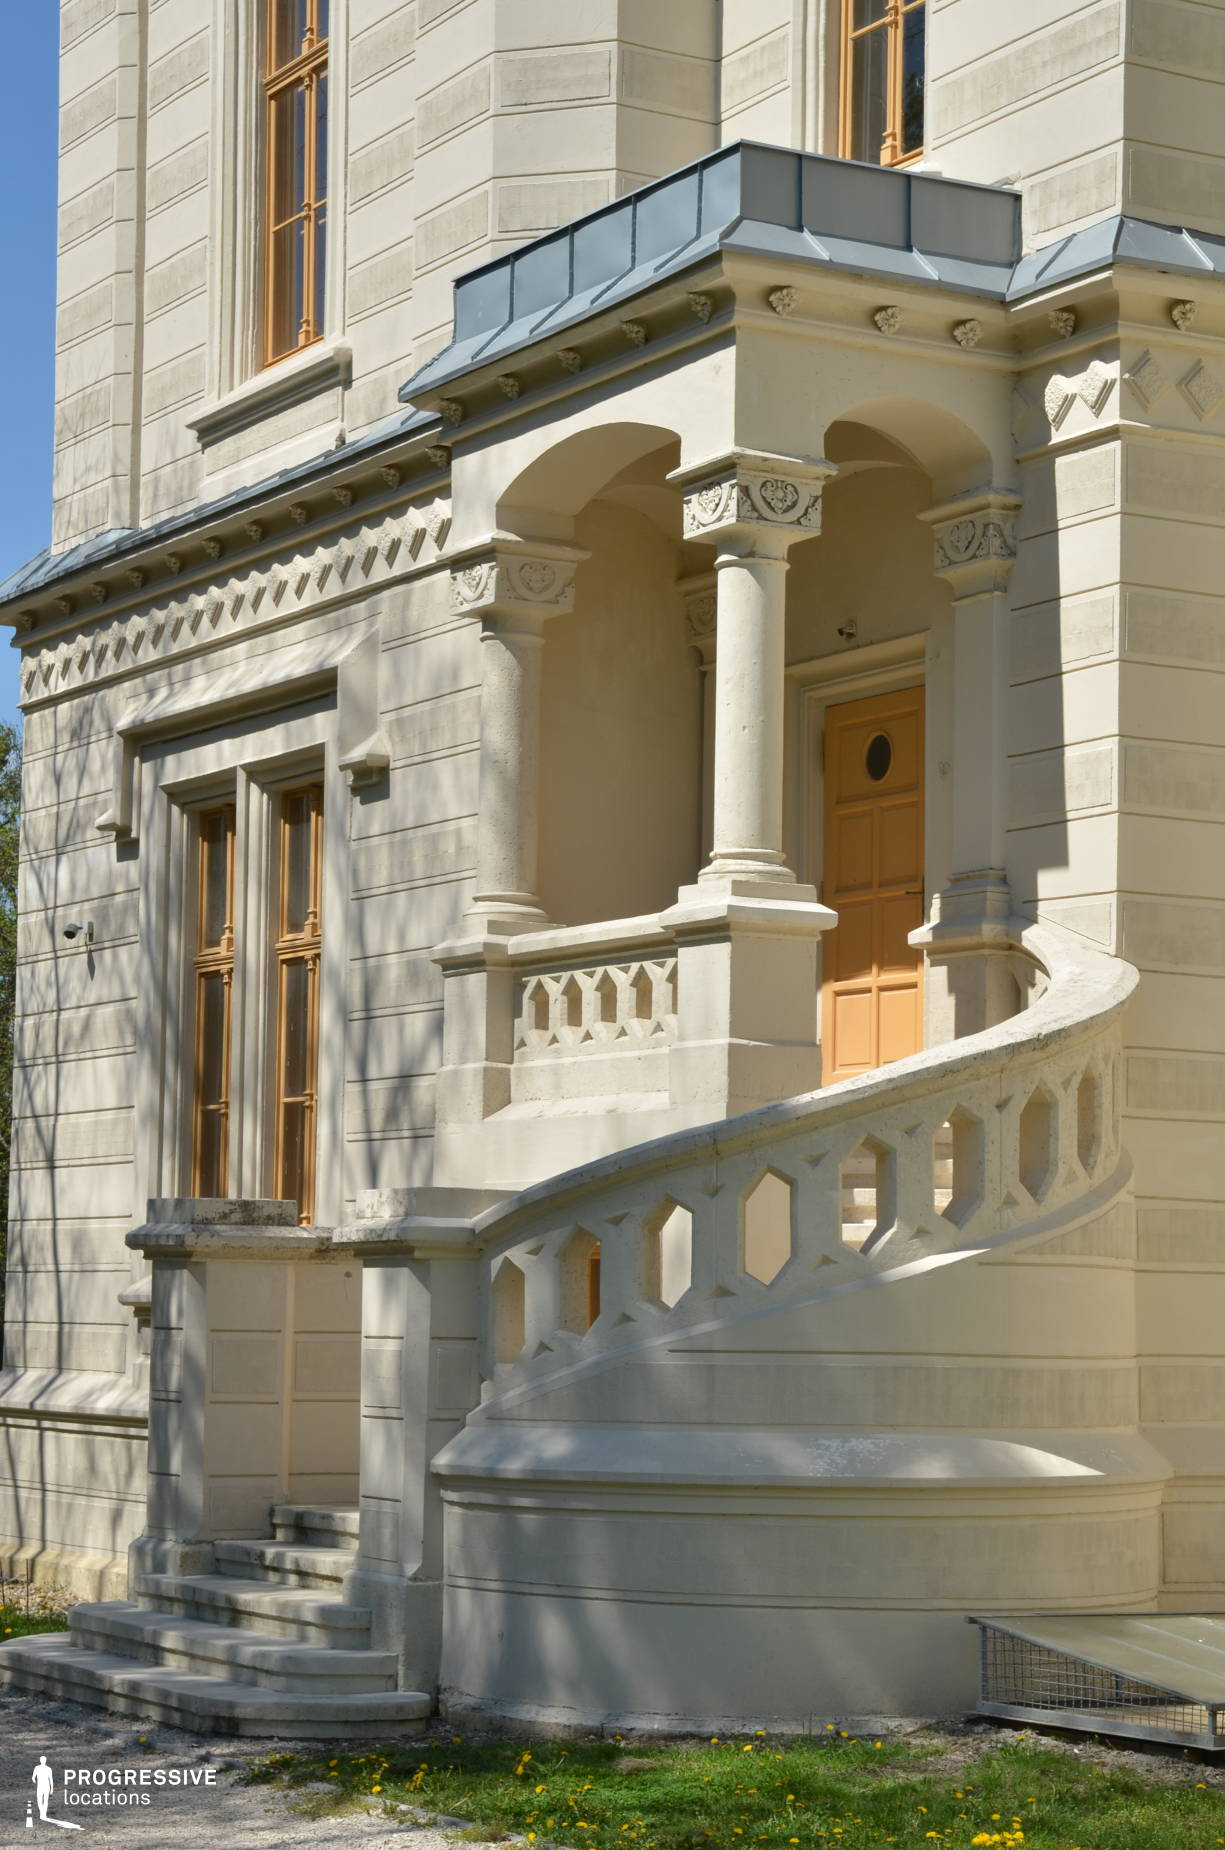 Locations in Hungary: Nadasdy Palace, Exterior %26 Stairs